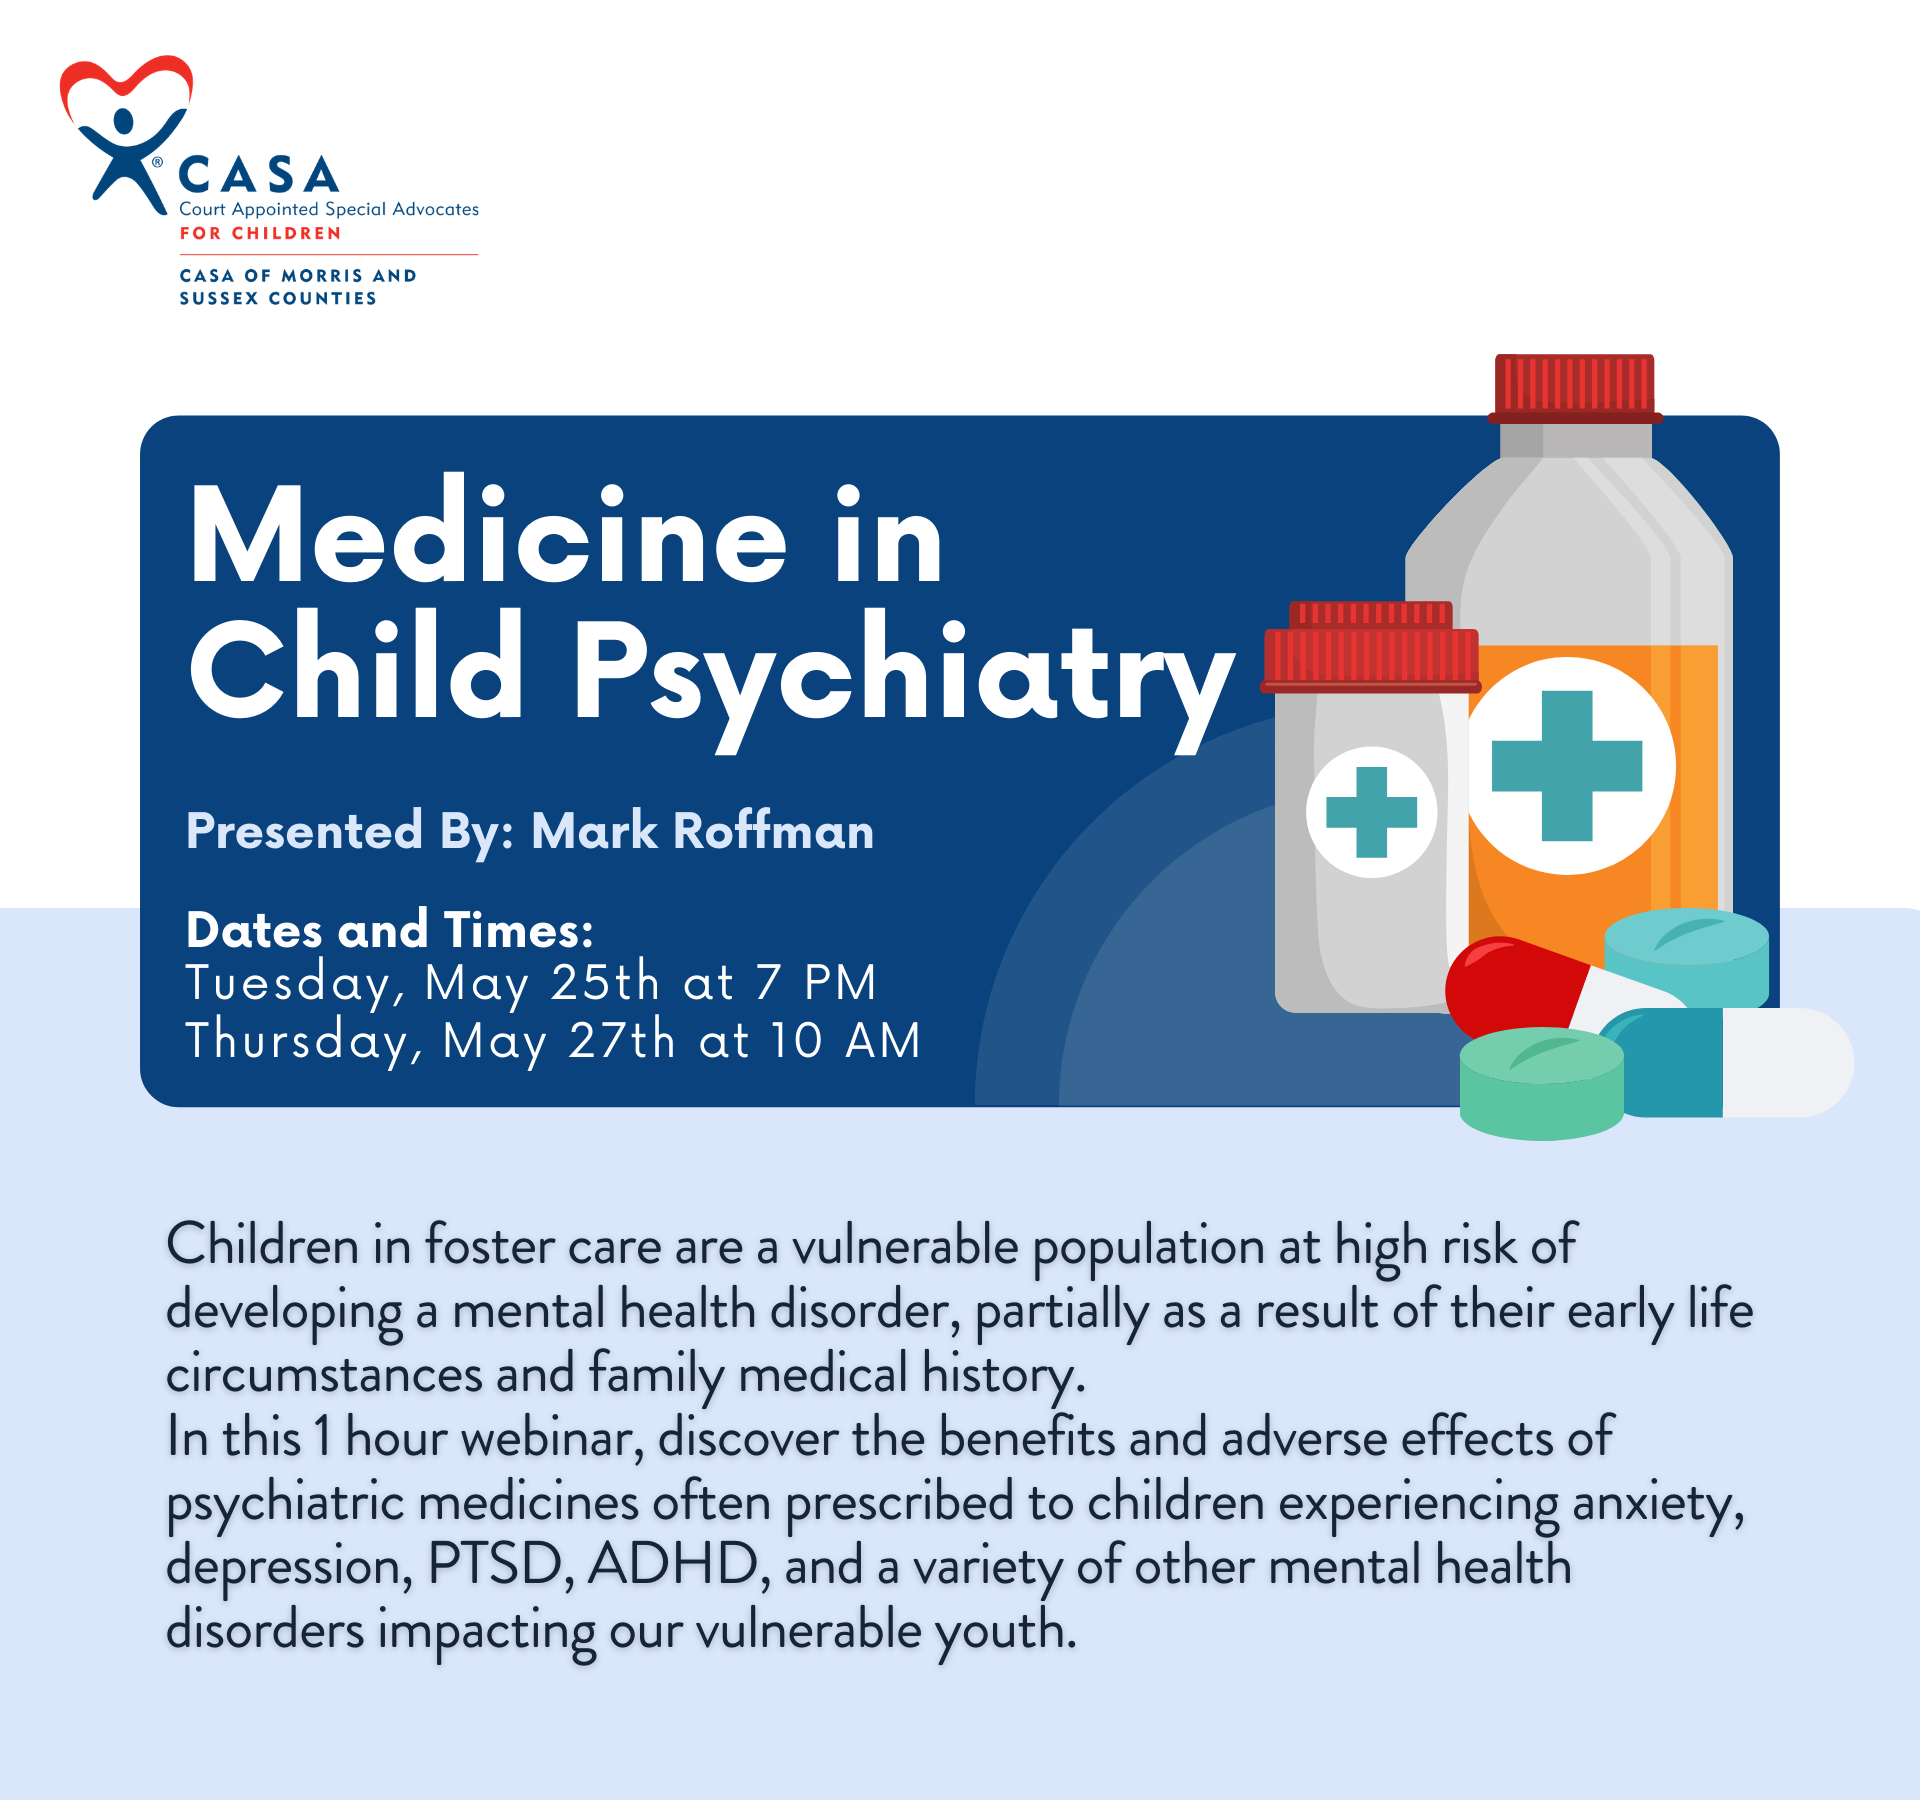 Medicine in Child Psychiatry